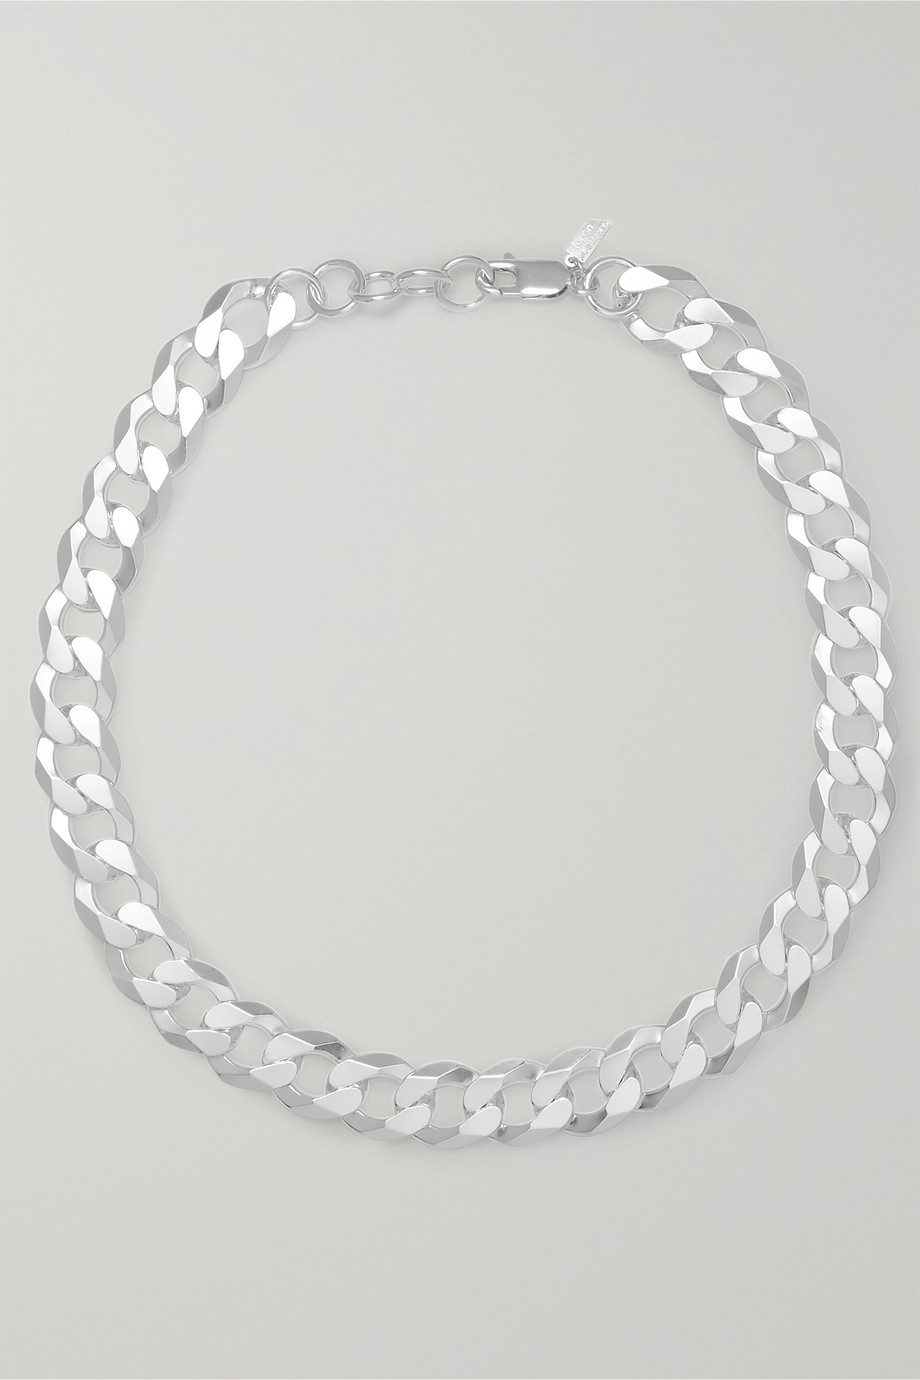 Loren Stewart XL silver necklace